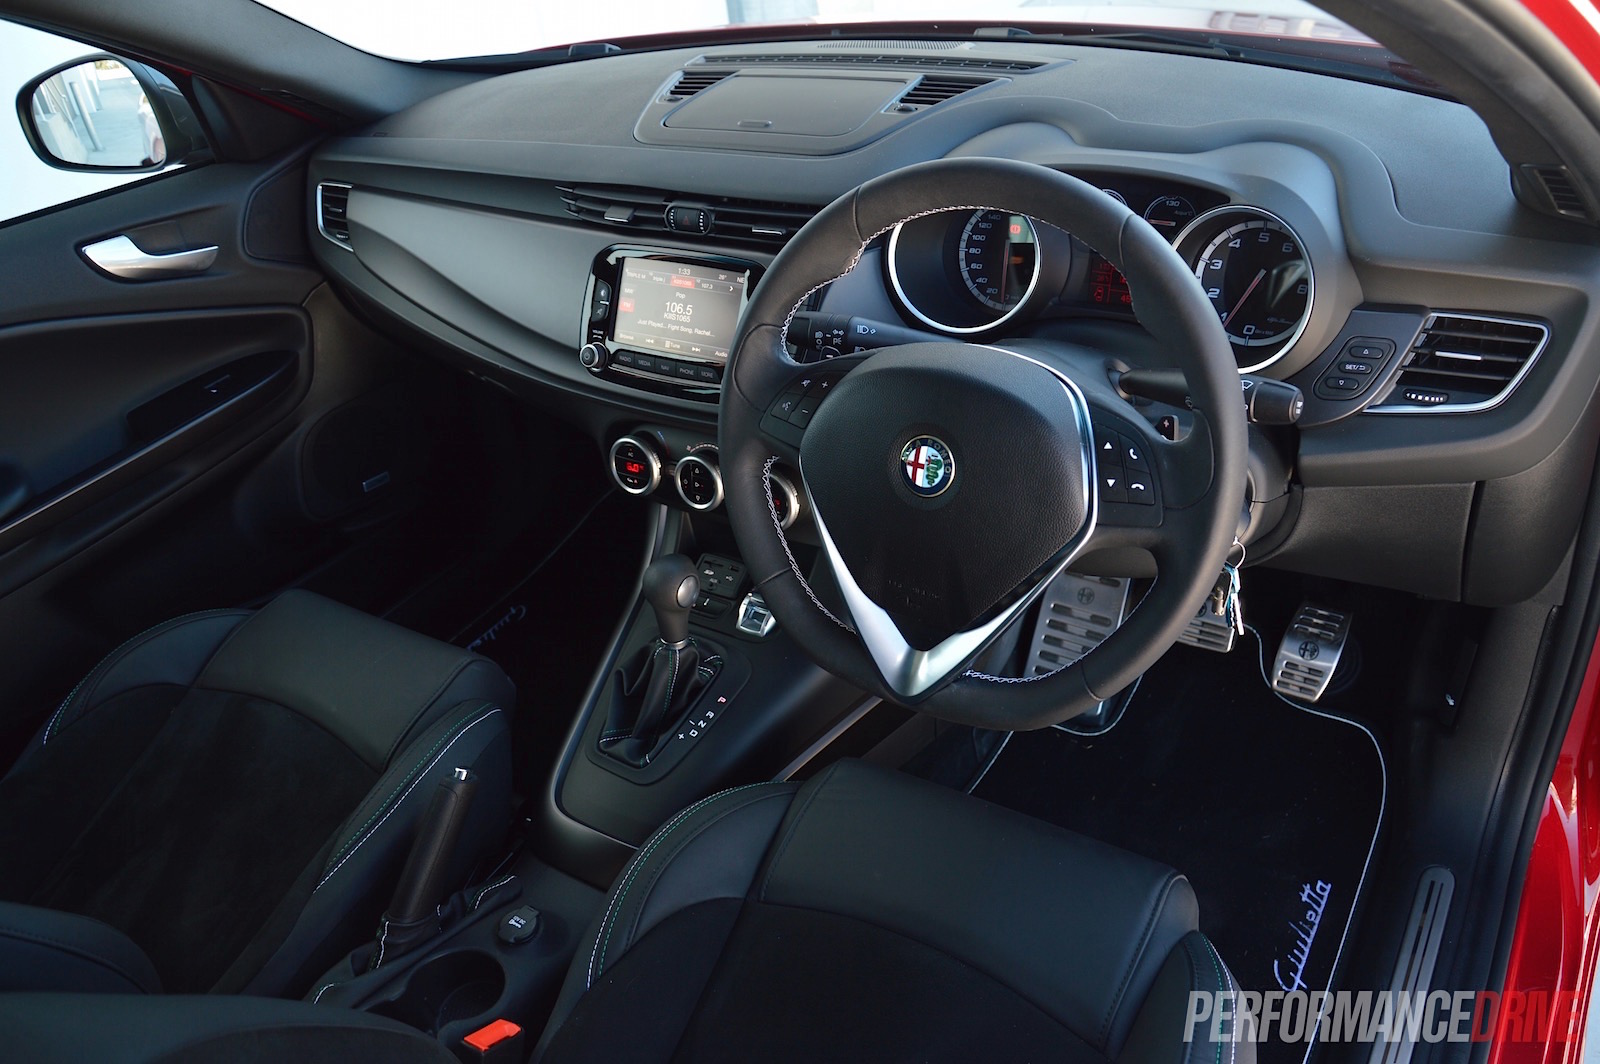 2015 Alfa Romeo Giulietta QV review (video) | PerformanceDrive